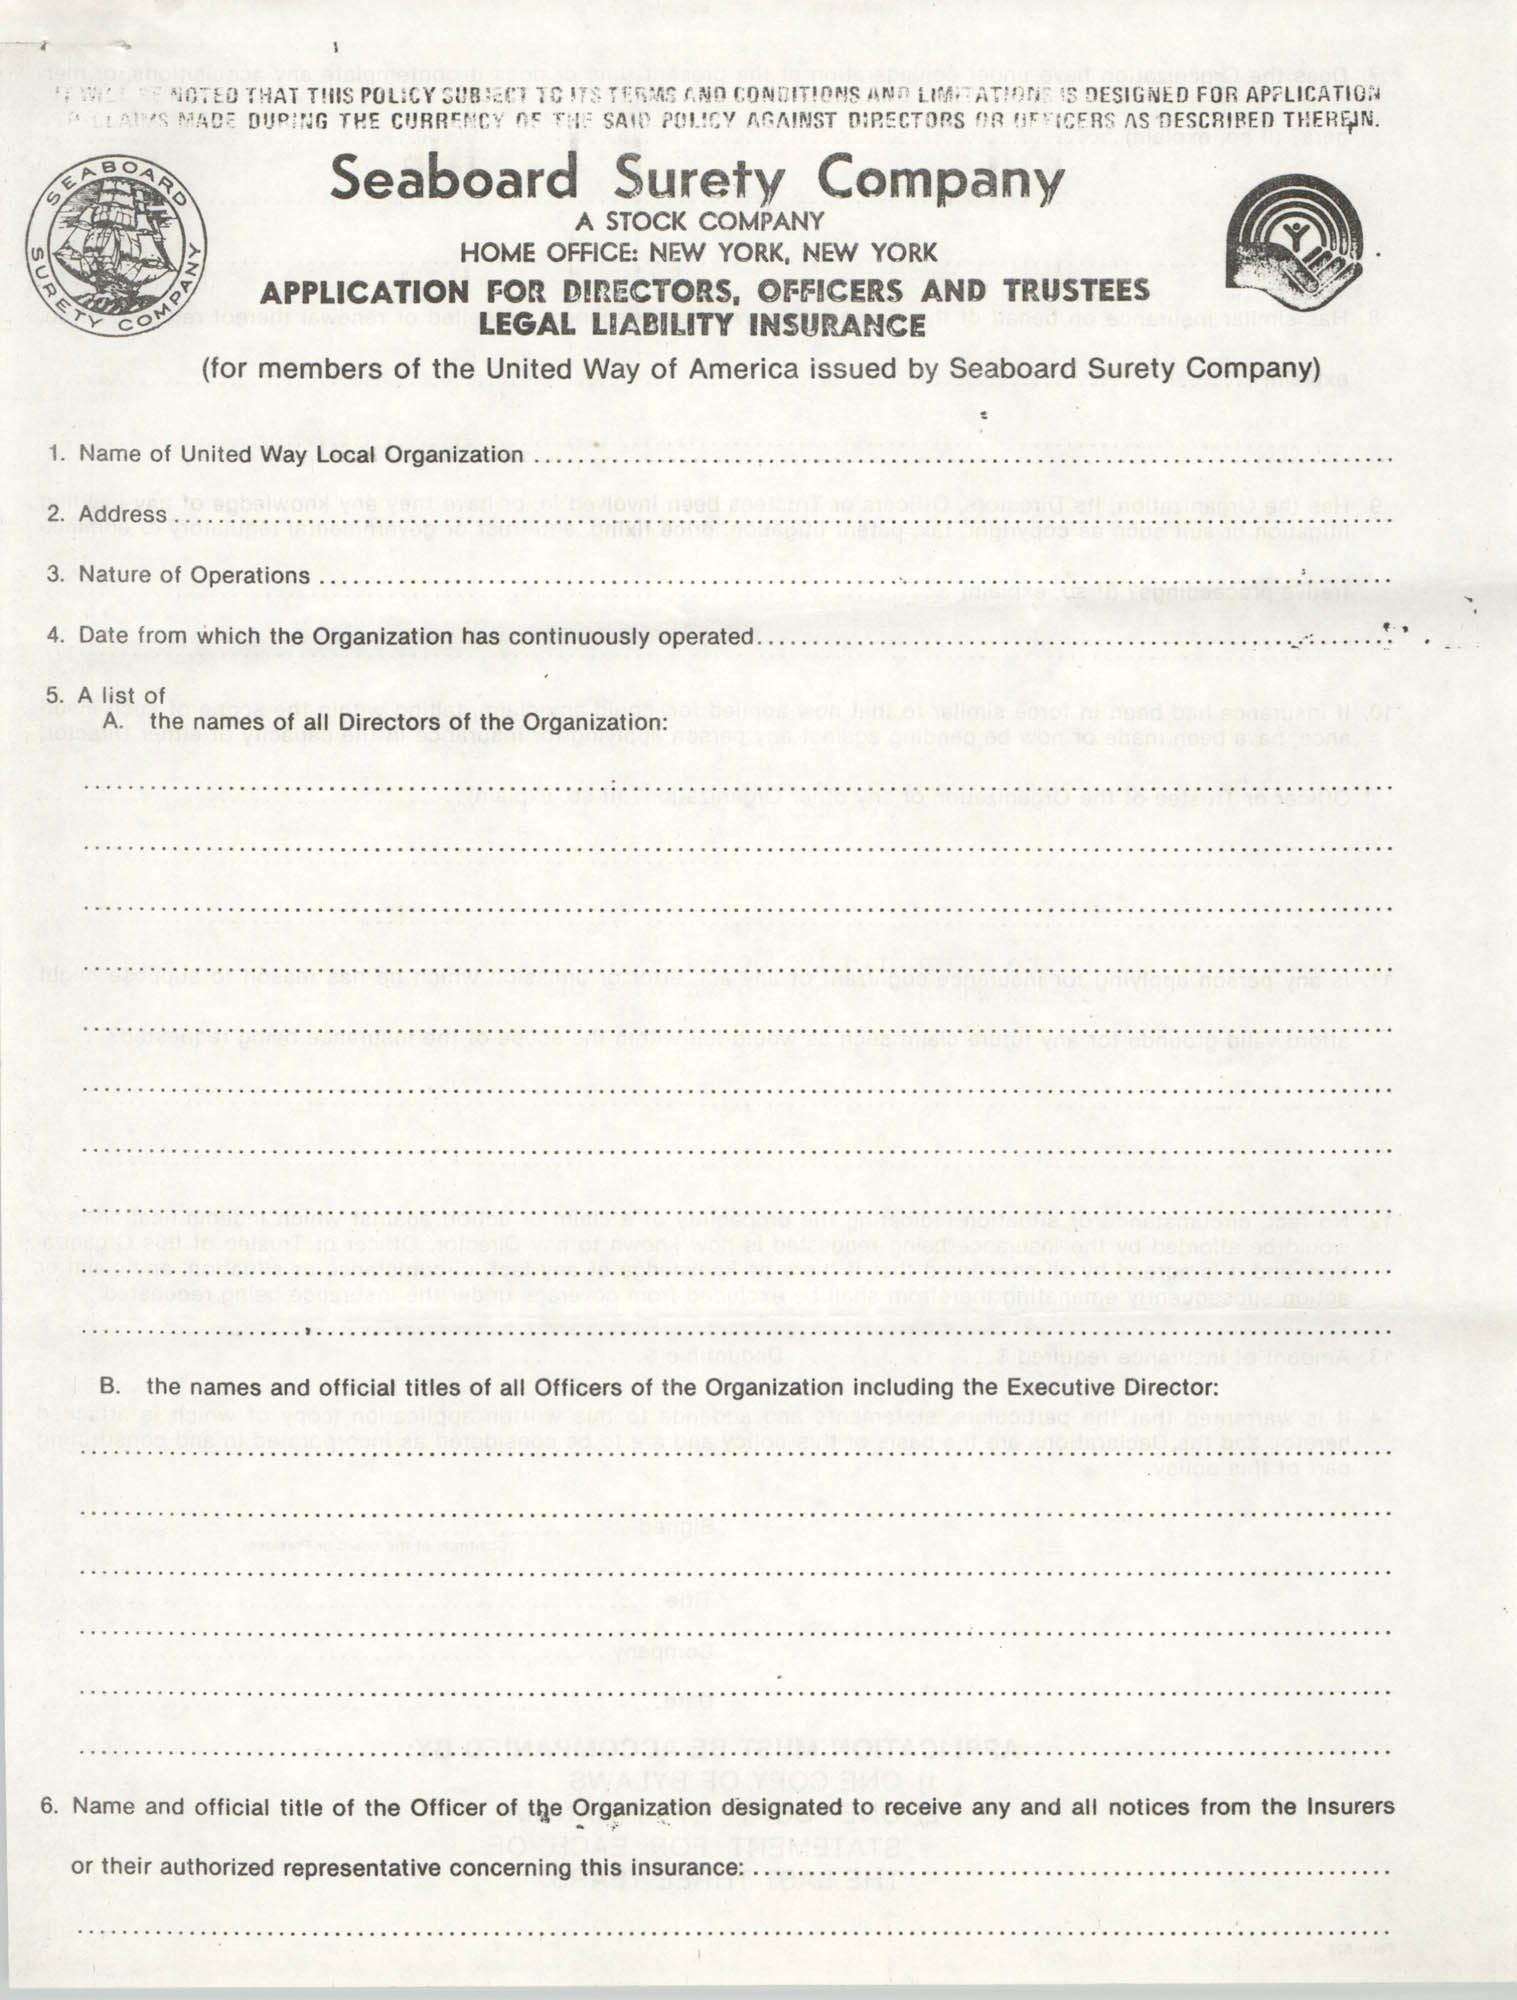 Seaboard Surety Company Legal Liability Insurance Application, Page 1